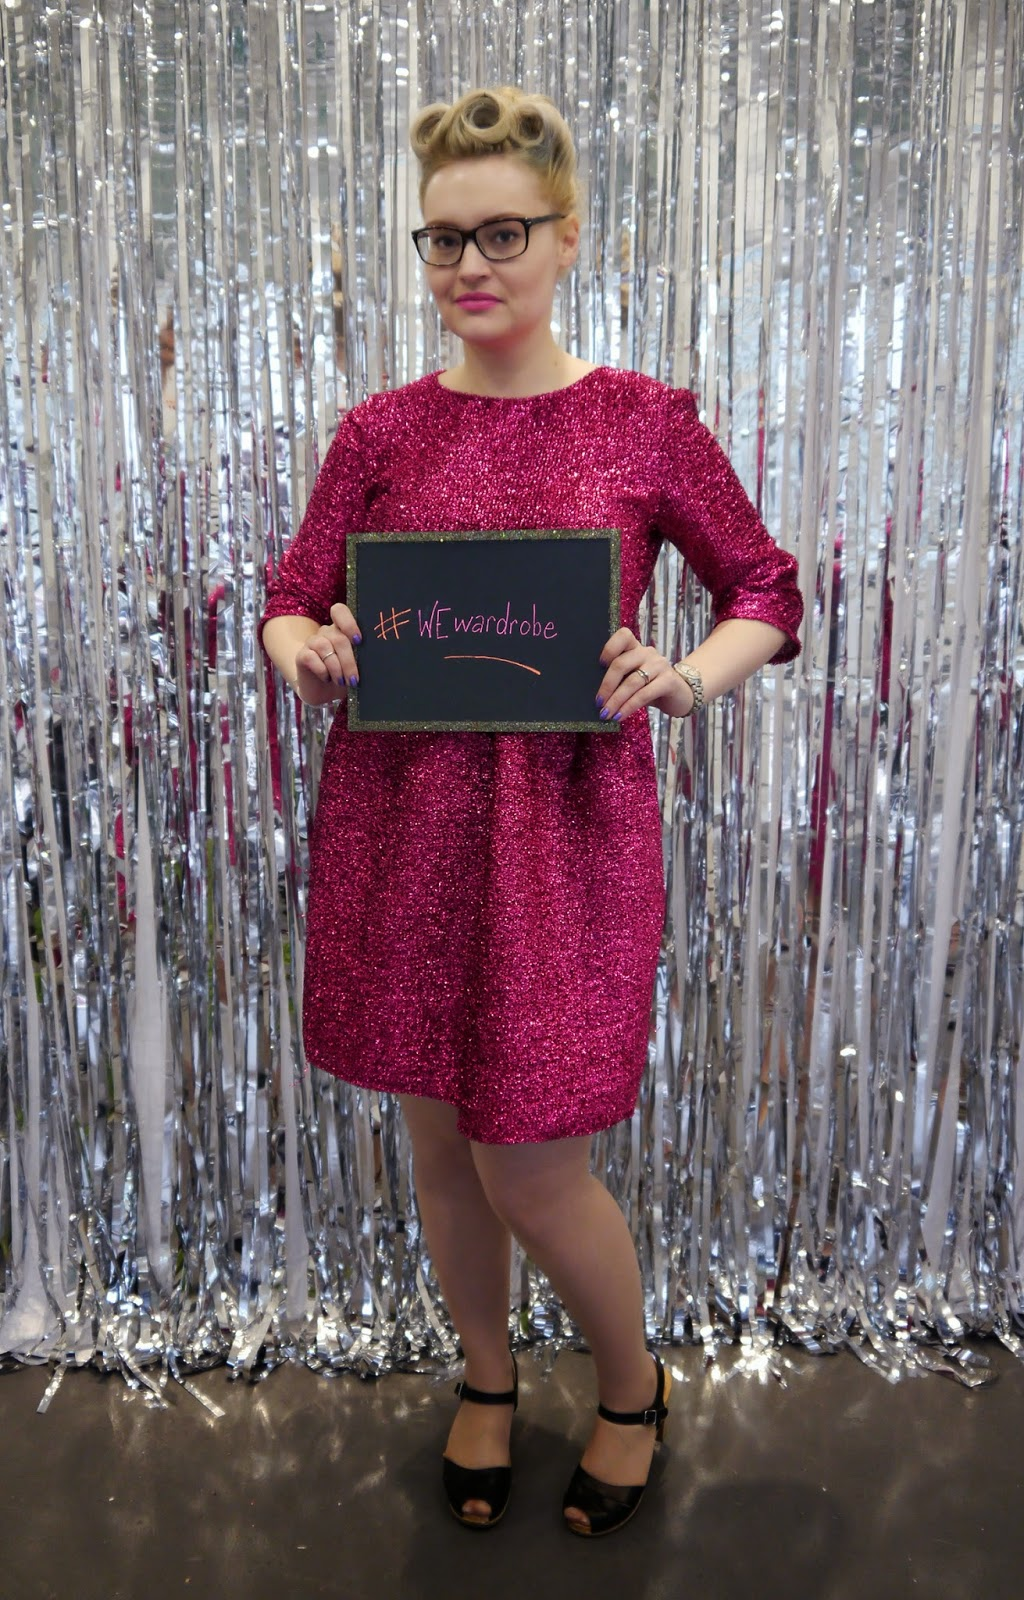 photobooth, DIY, sparkly, party, sequin dress, VintageStyleMe, victory rolls, Betty Grable, poodle hair, 1940s, how to